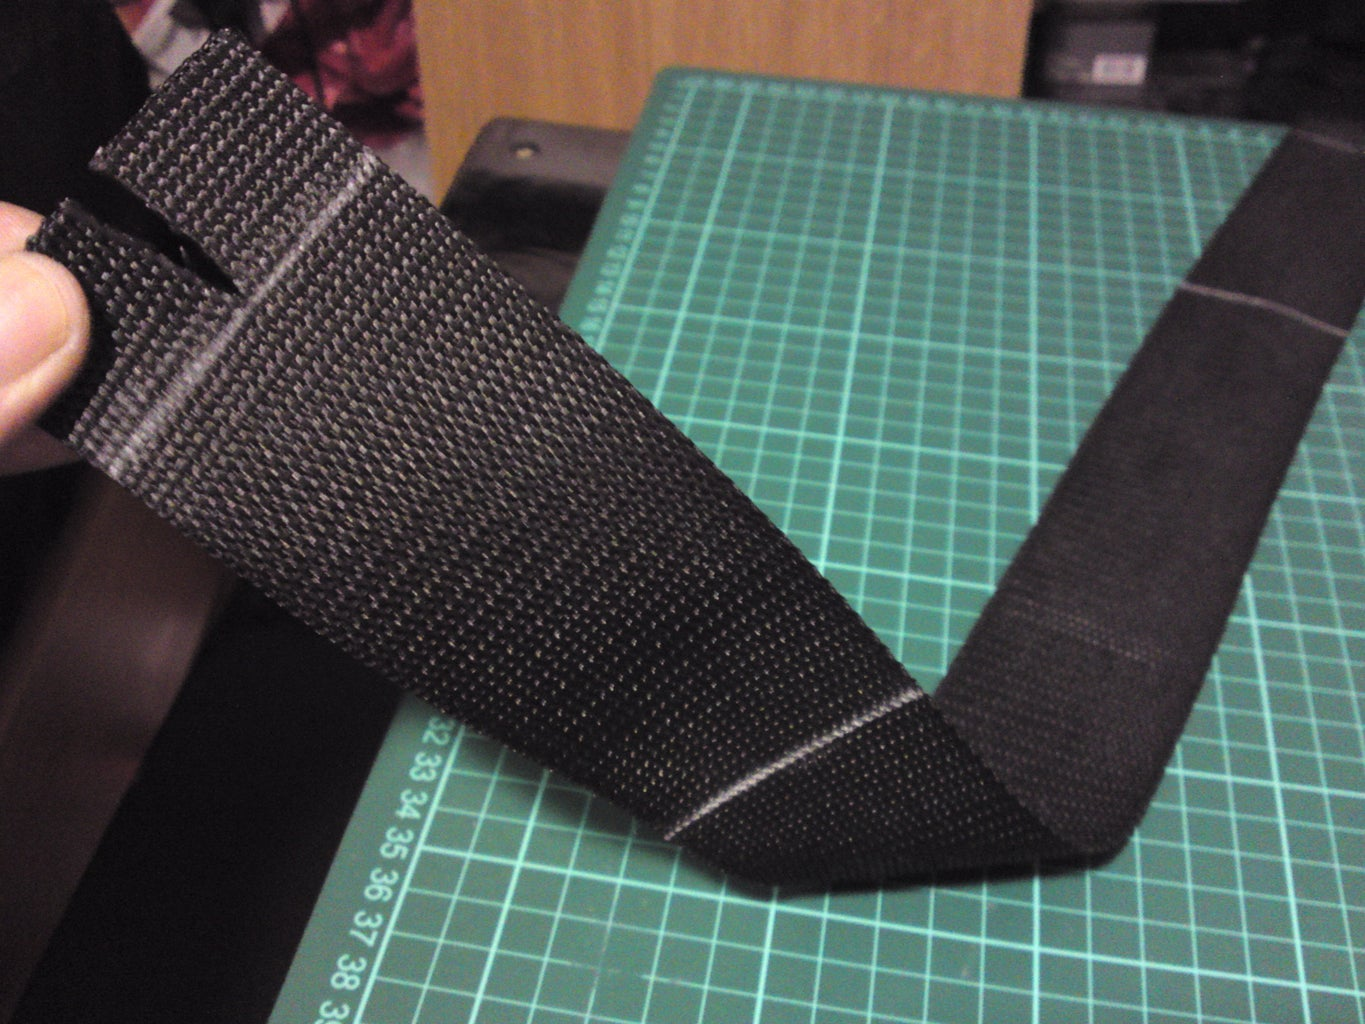 Making the 2 Straps 1st... Then Mark Them Up So They Are Ready for the Velcro...